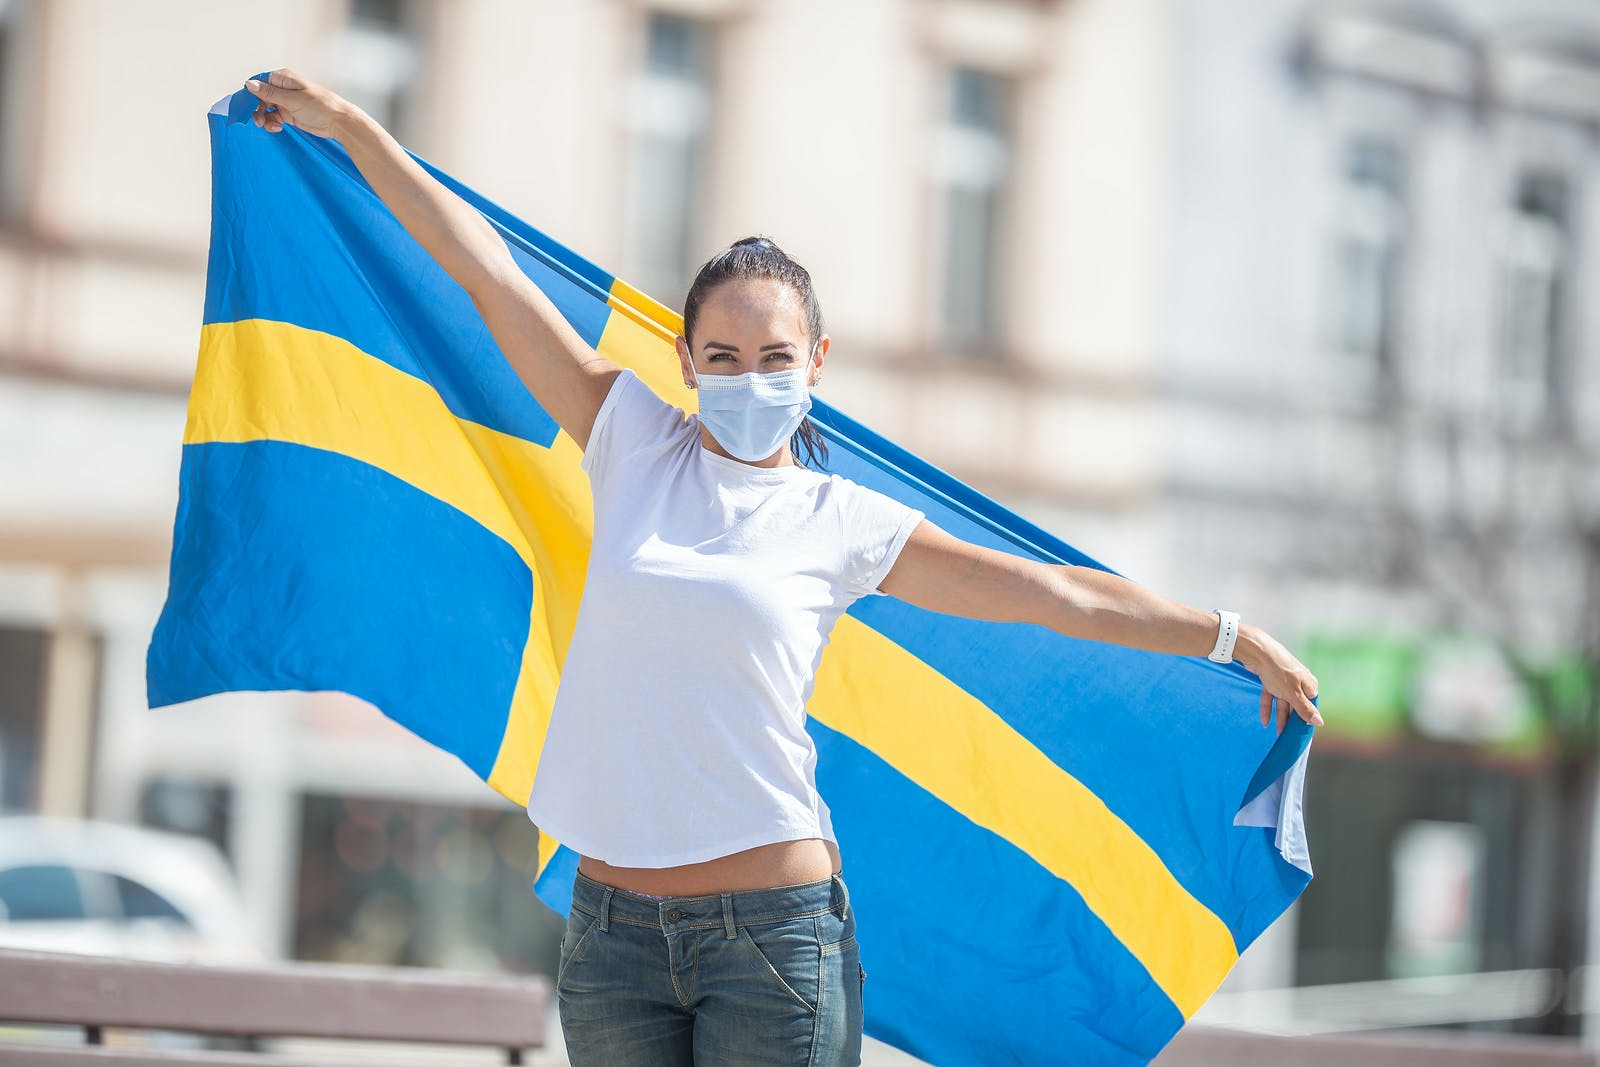 Beautiful smiling Swedish girl holds a flag while wearing a protective face mask outdoors.